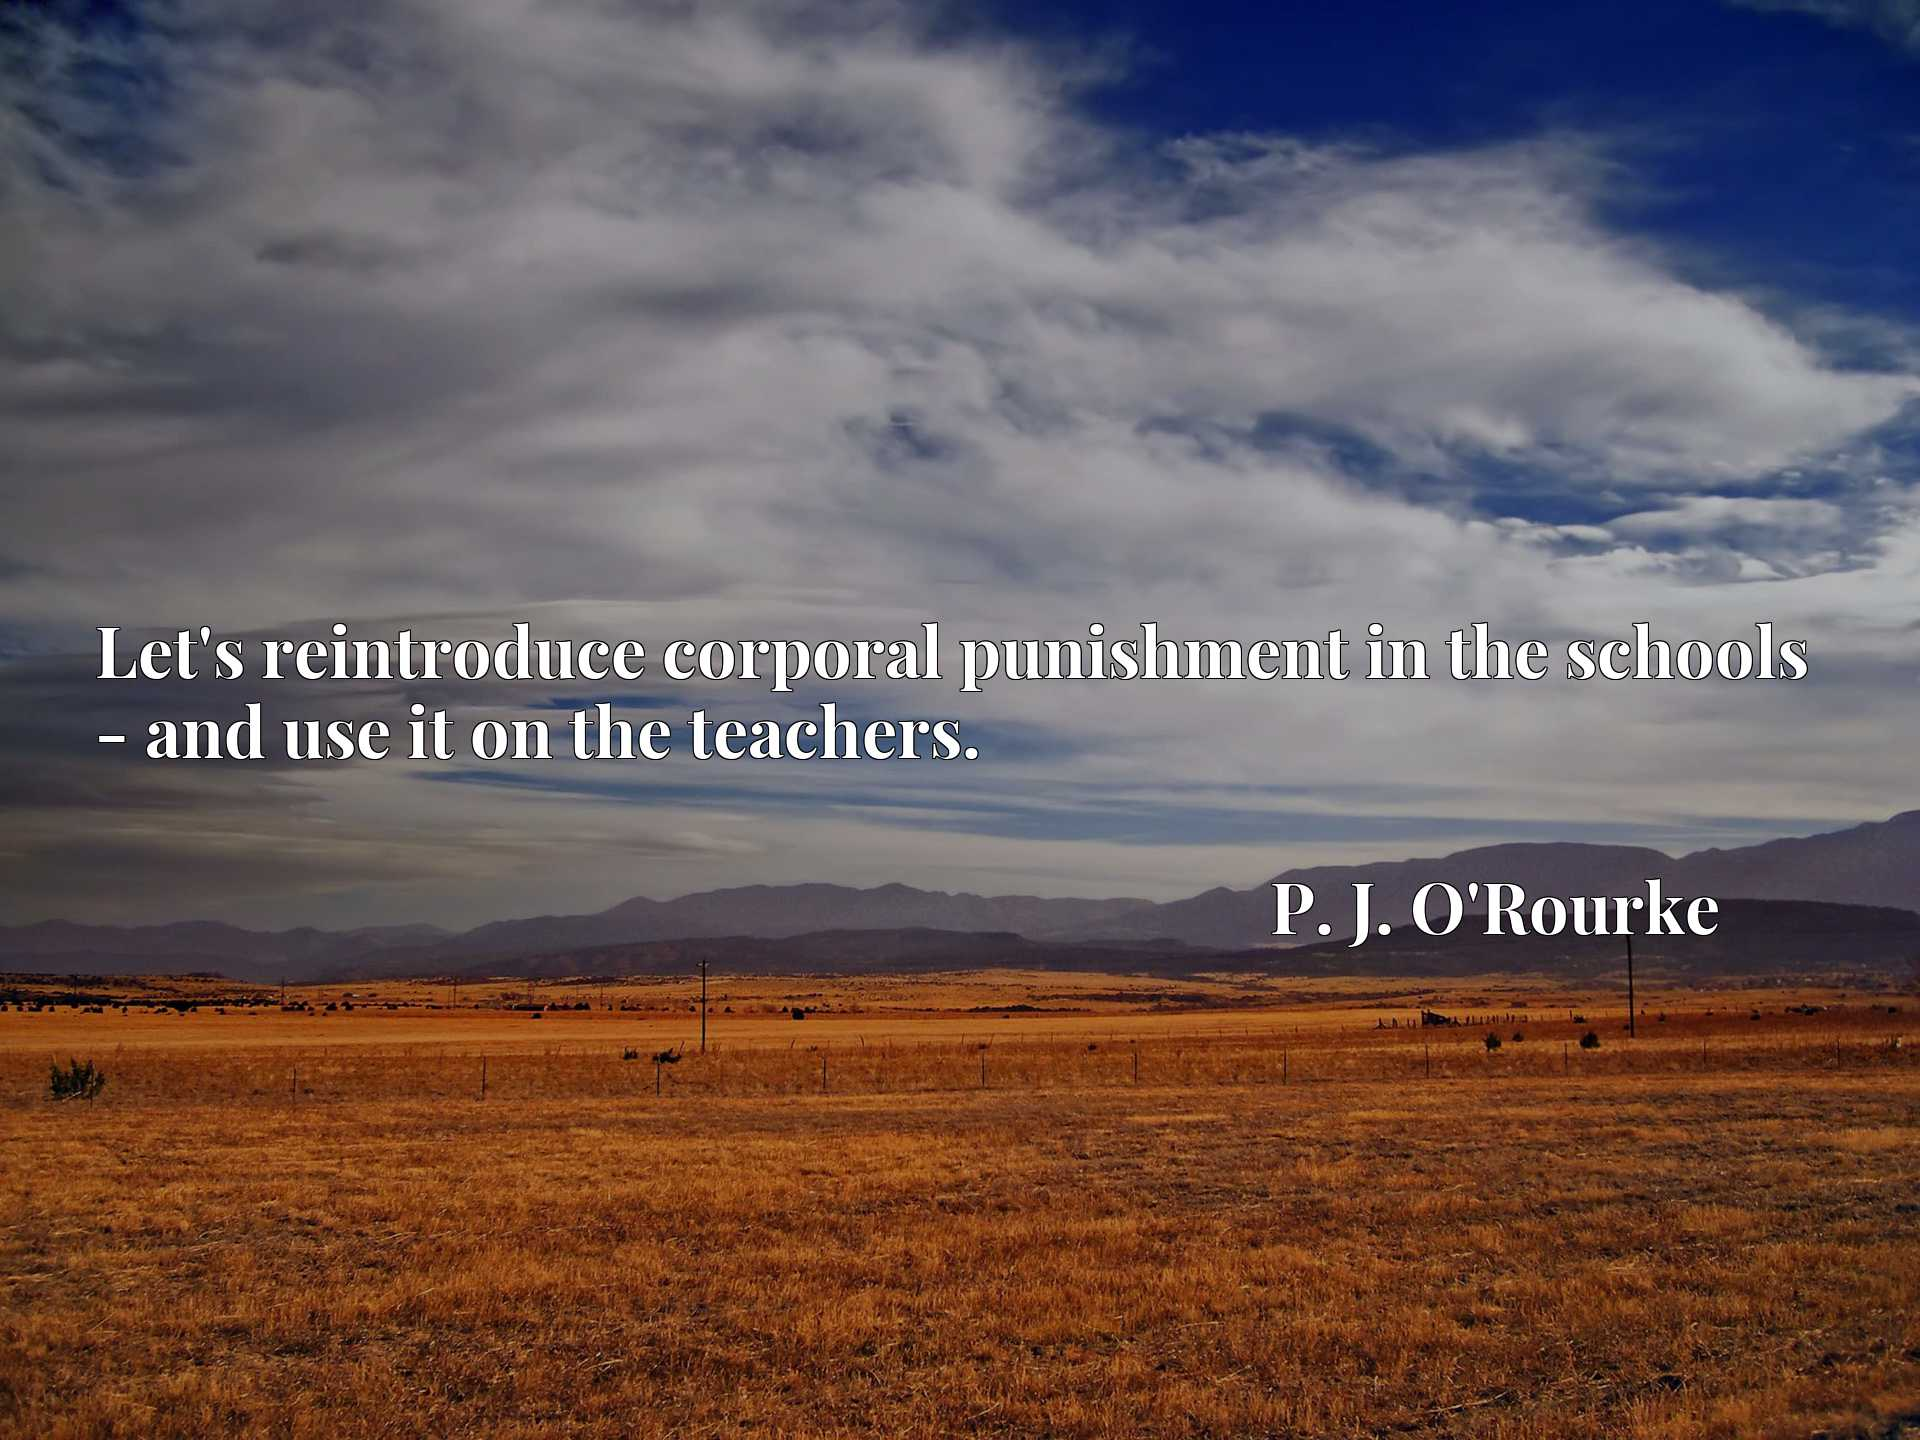 Quote Picture :Let's reintroduce corporal punishment in the schools - and use it on the teachers.